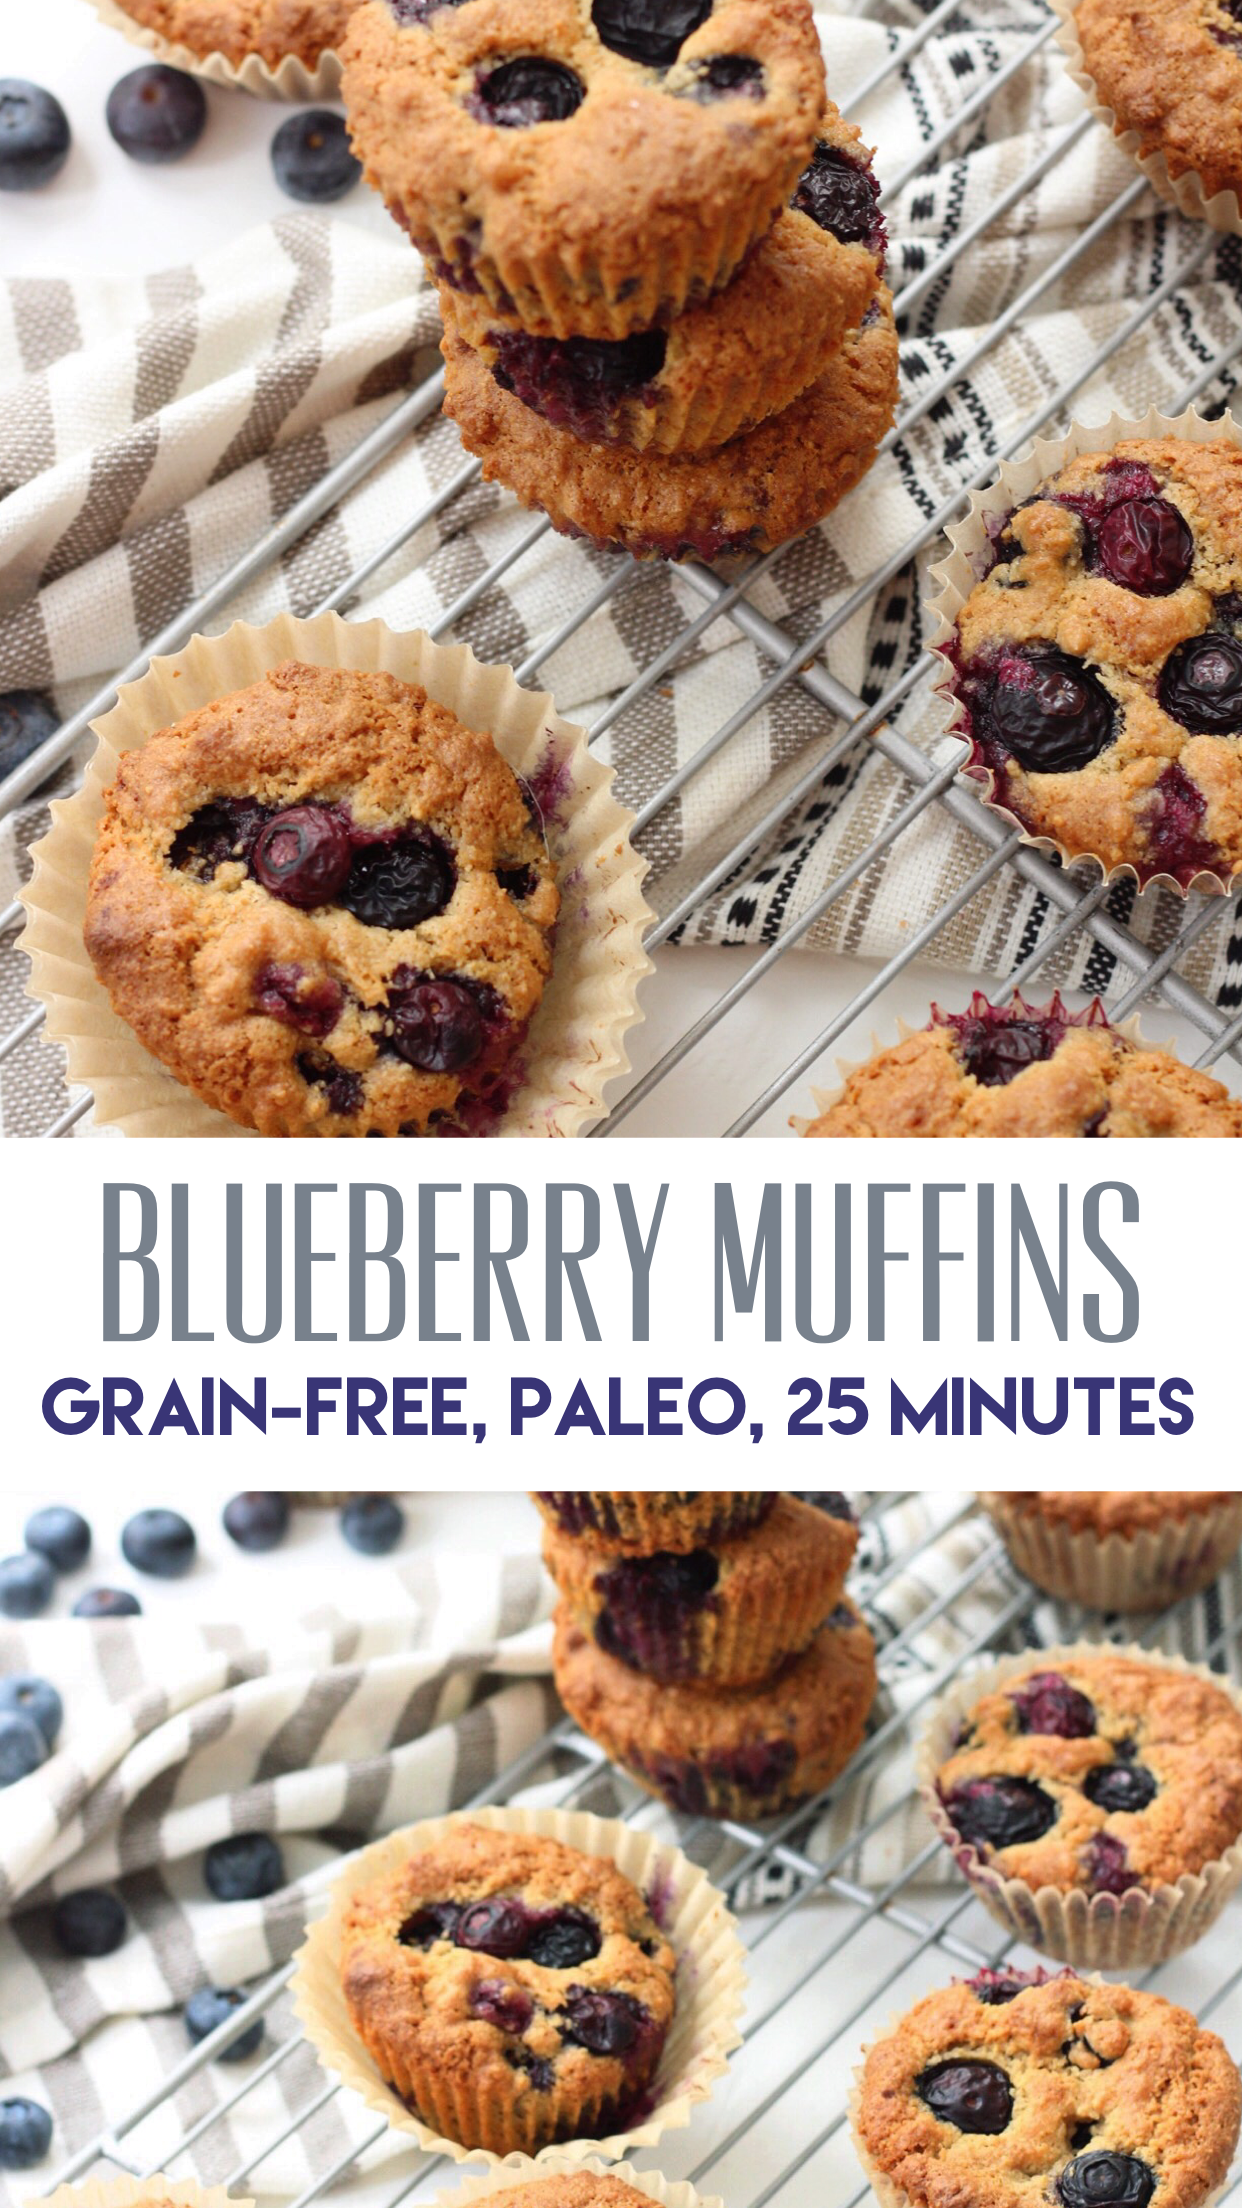 Paleo blueberry muffins that are grain free, easy to make, and only need a few simple ingredients! These are healthier family friendly baking recipe that you'll be sure to make again and again! #paleomuffin #paleoblueberrymuffin #grainfreemuffin